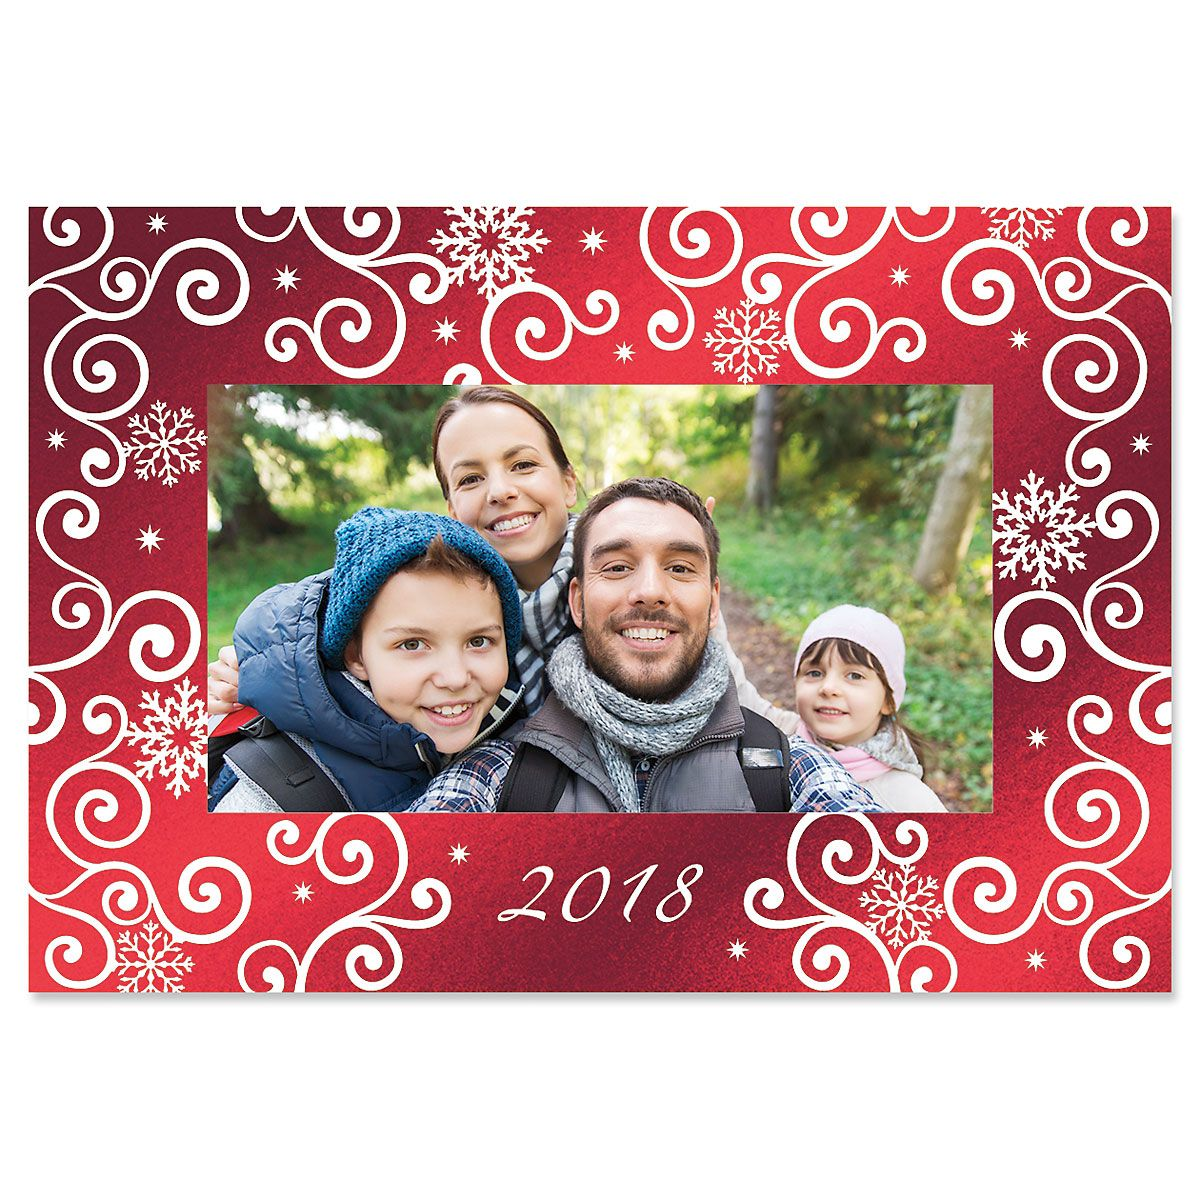 Deluxe Snowflake Photo Sleeve Christmas Cards